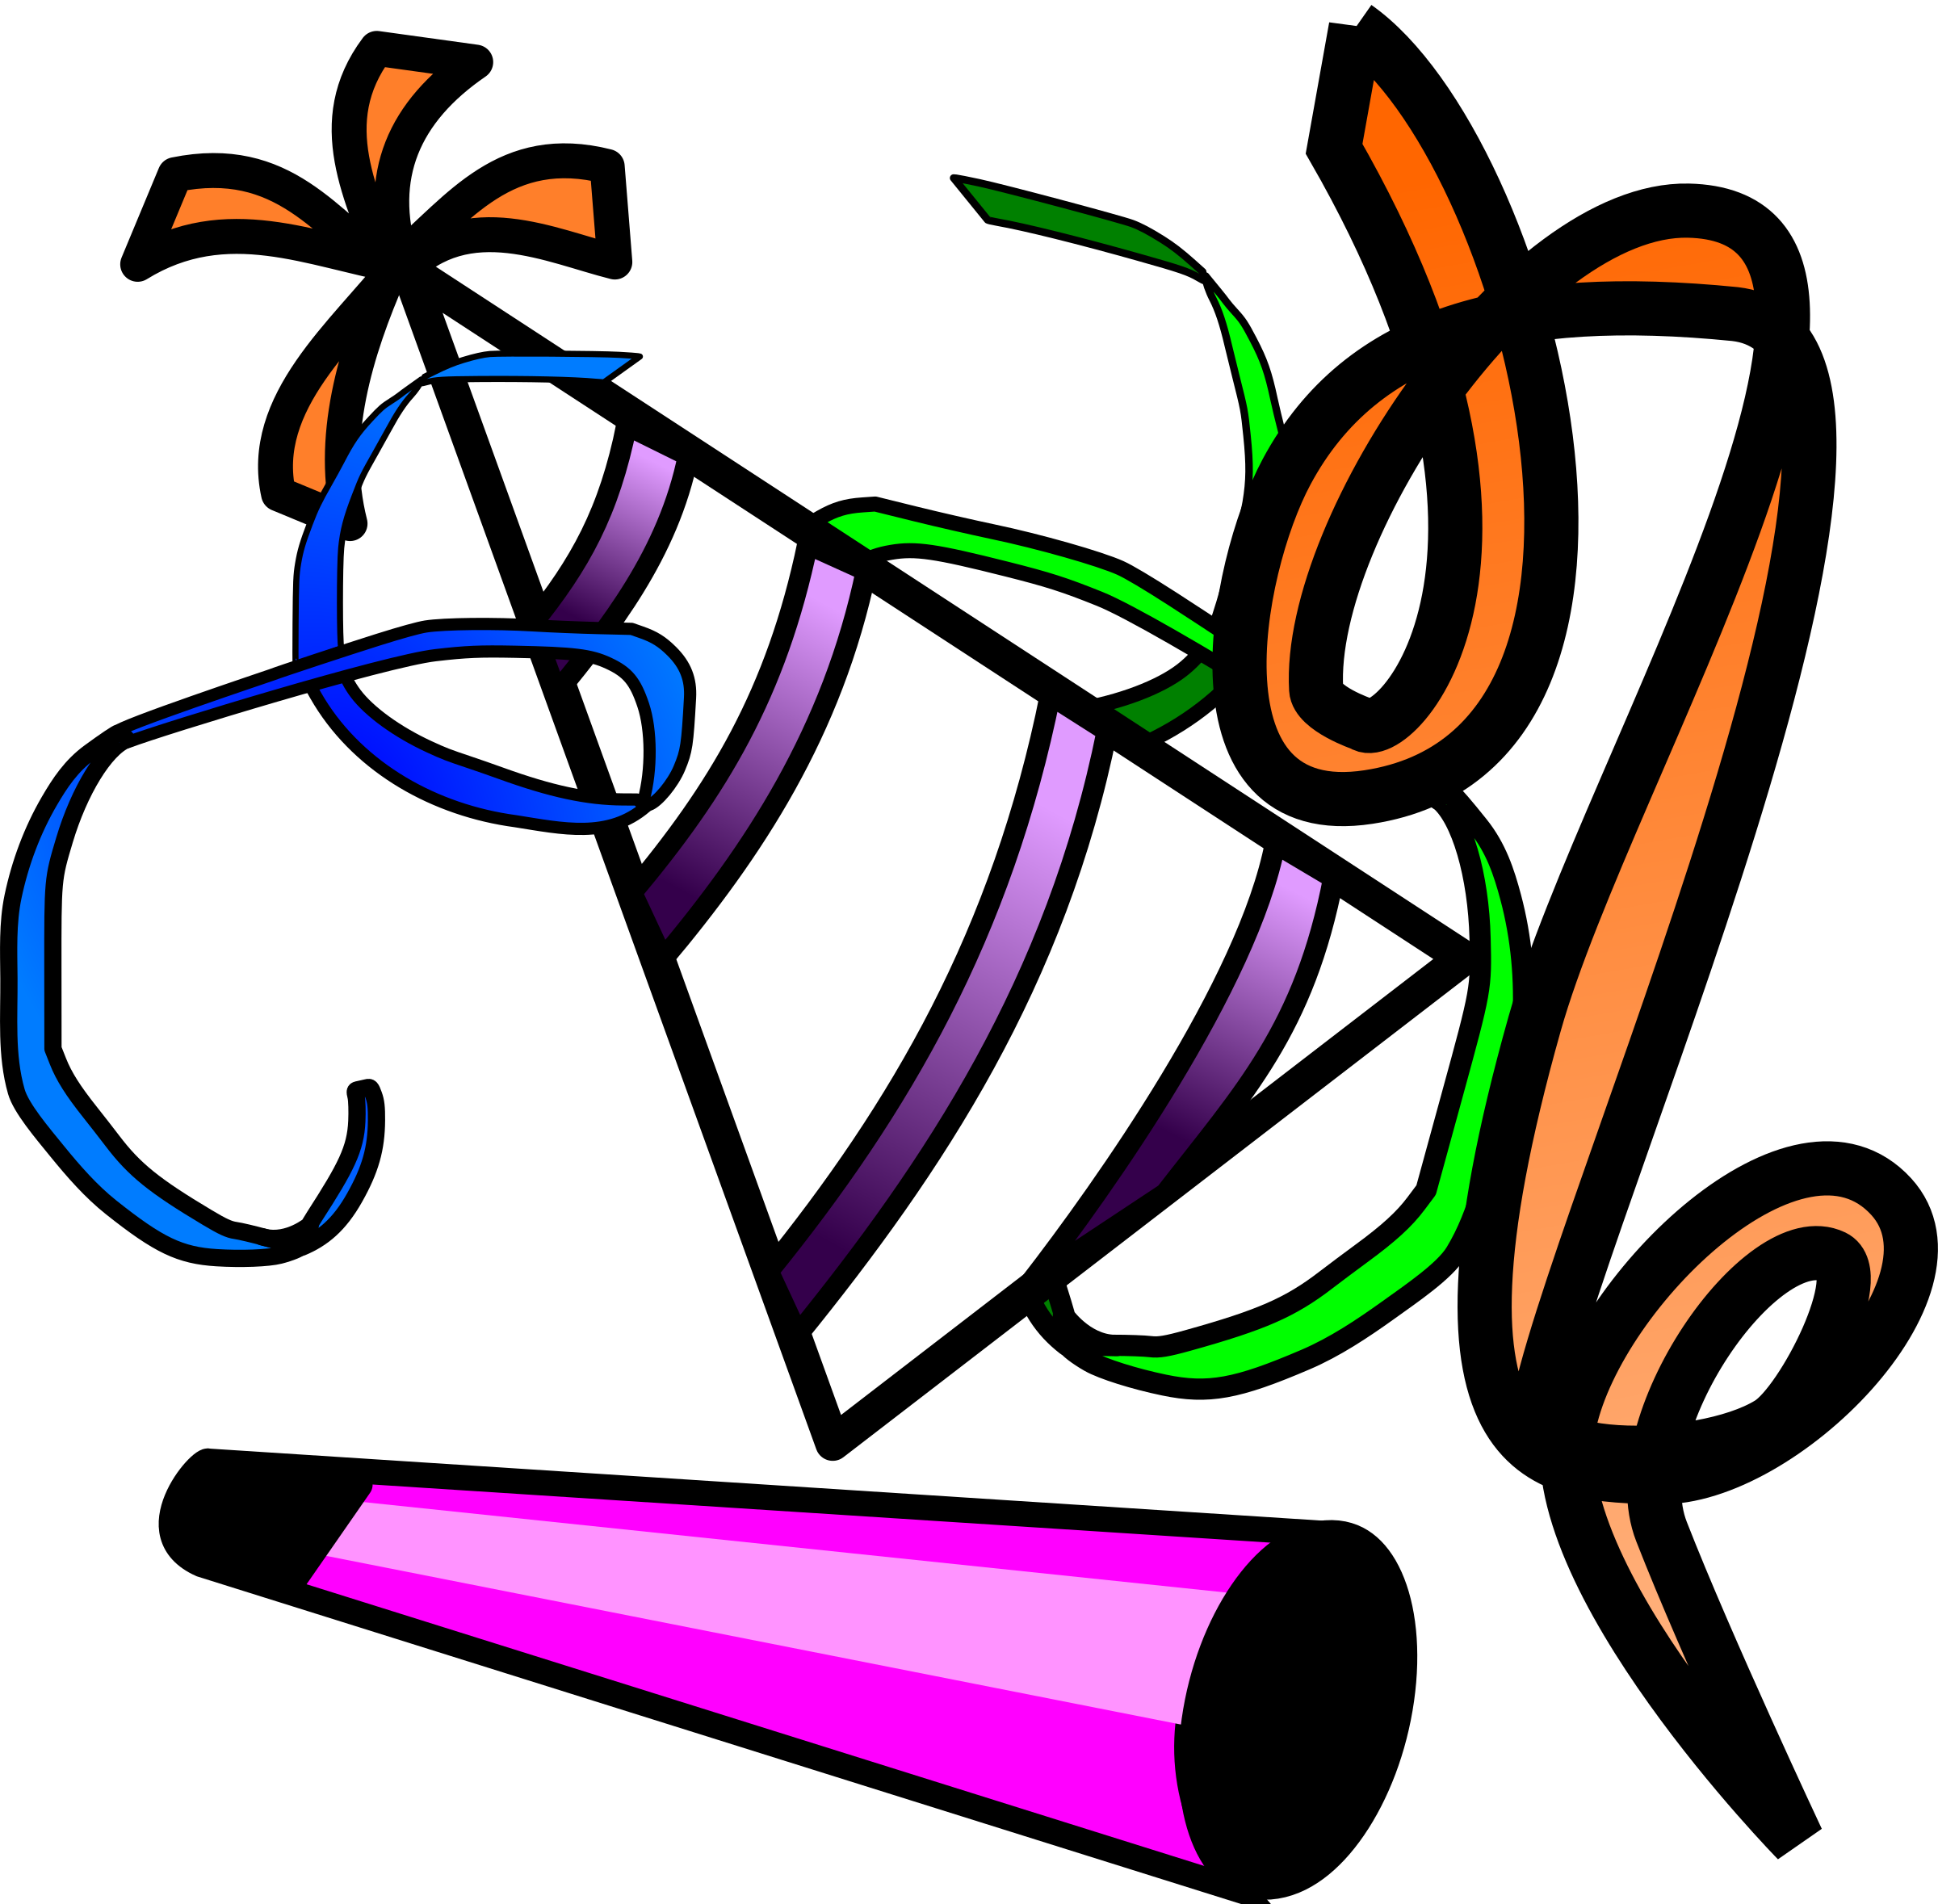 picture Last of clipart celebrate. Celebration class party free.